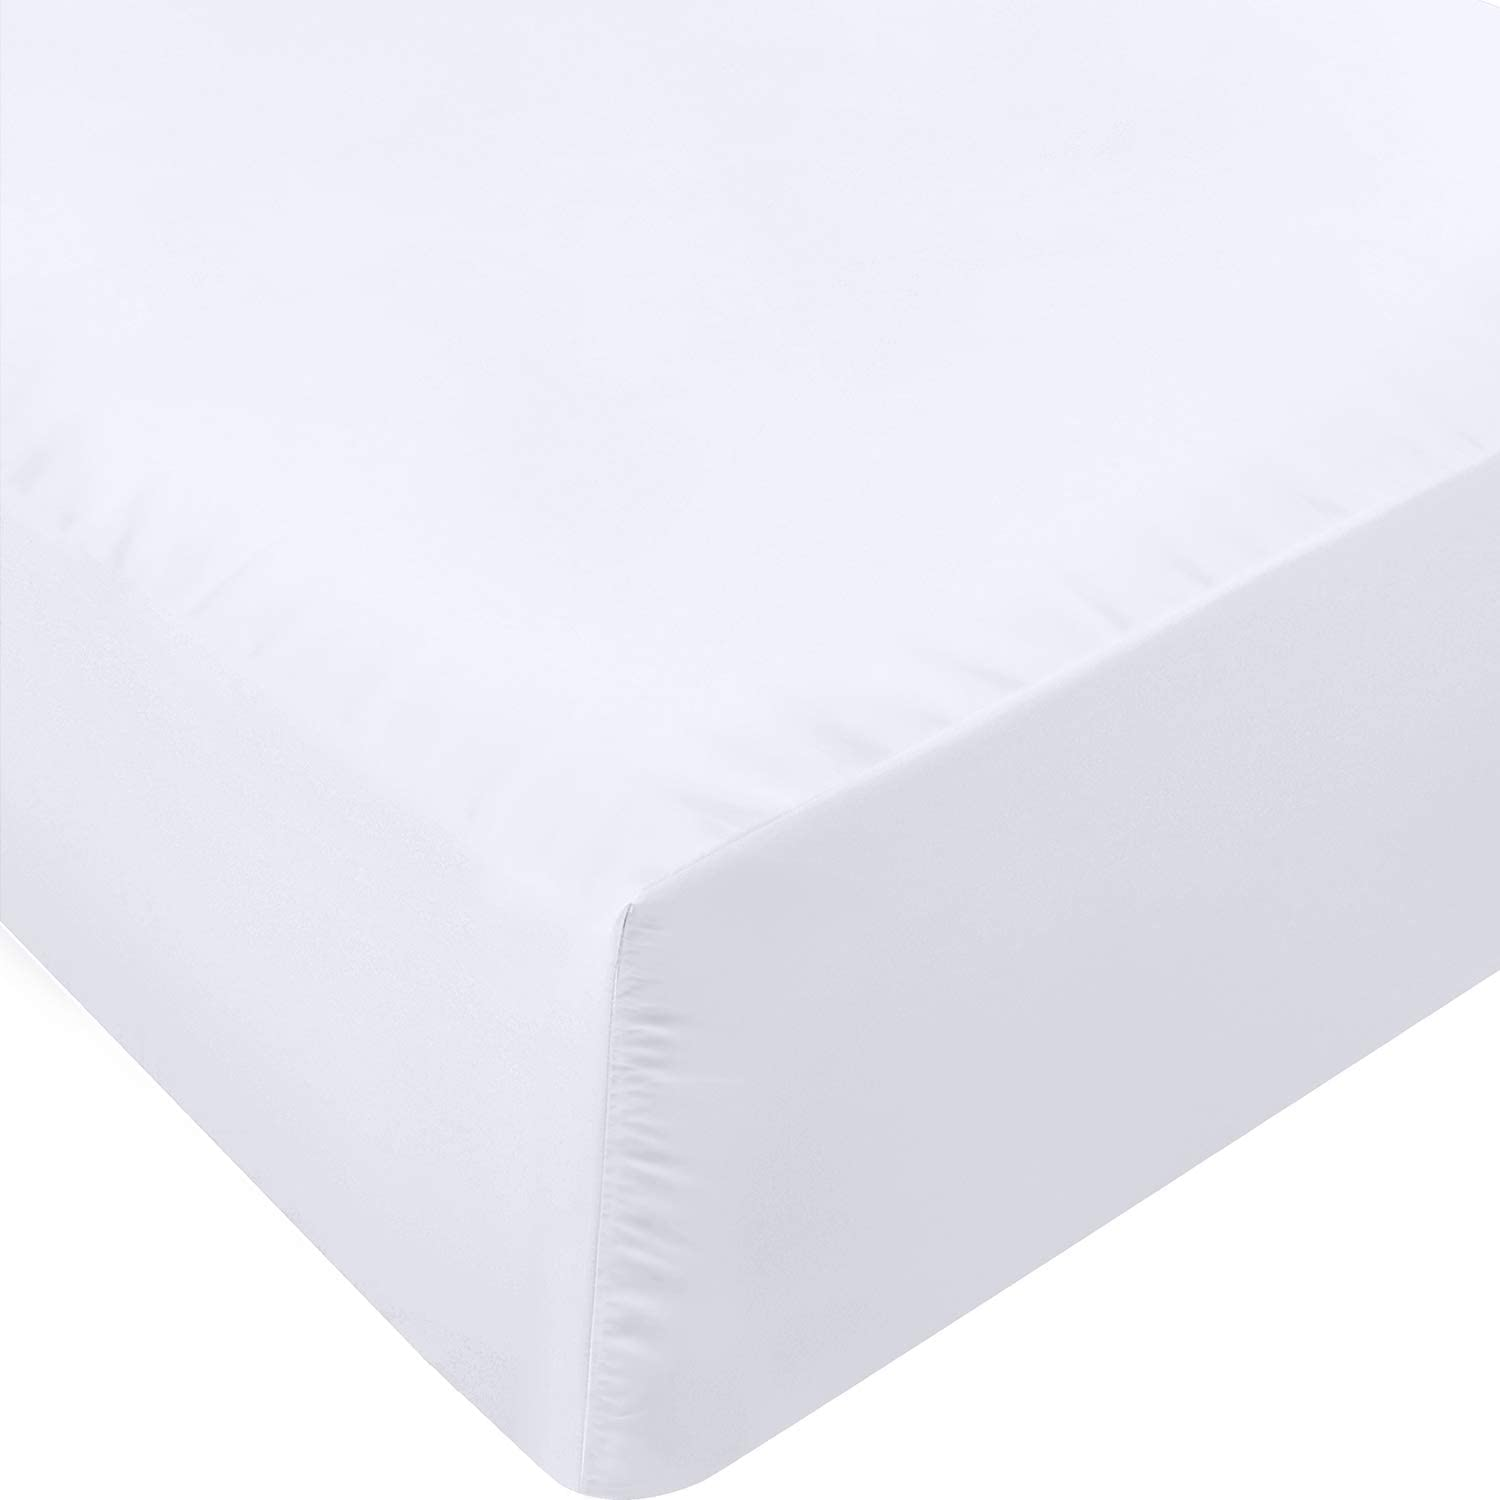 Utopia Bedding Fitted Sheet - Soft Brushed Microfiber - Deep Pockets, Shrinkage and Fade Resistant - Easy Care - 1 Fitted Sheet Only (Queen, White): Home & Kitchen